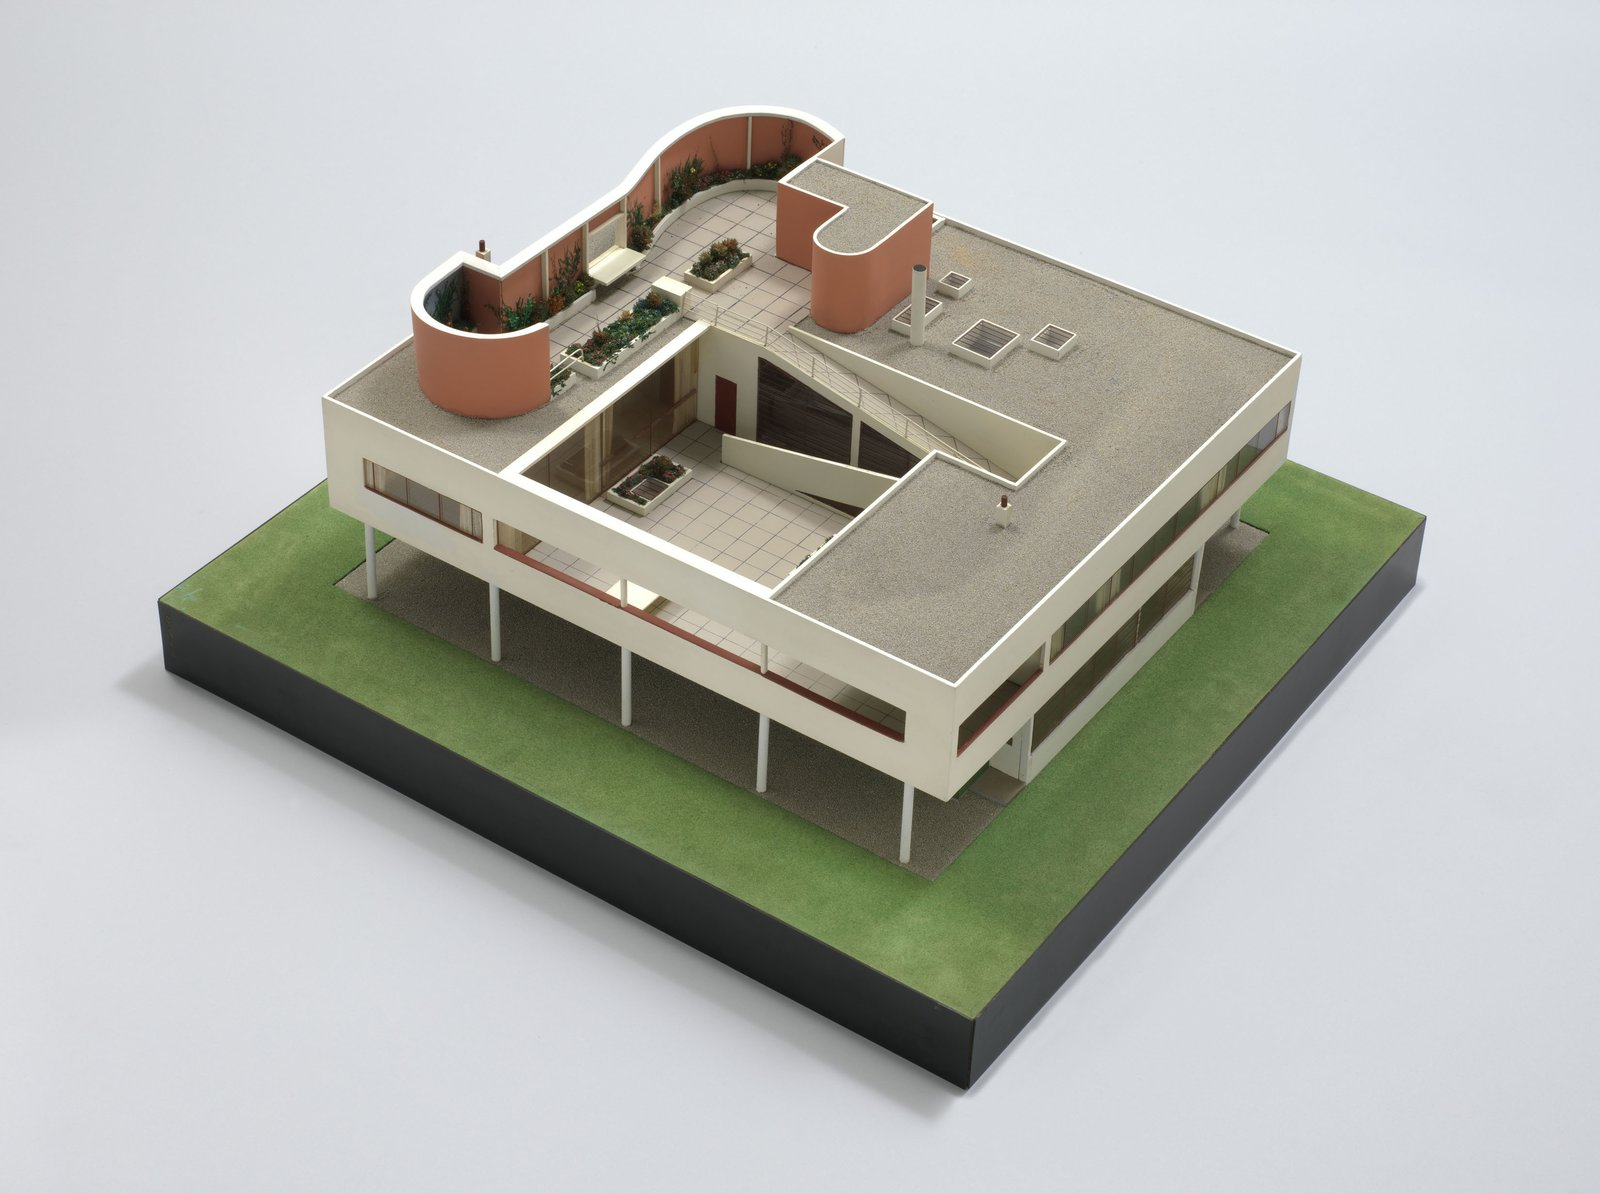 """Le Corbusier (Charles-Edouard Jeanneret) (French, born Switzerland. 1887-1965). Villa Savoye, Poissy. 1928-31. Model, 1932. Wood, aluminum, and plastic. 16 x 34 x 32"""" (40.6 x 86.4 x 81.3 cm). Model maker: Theodore Conrad. The Museum of Modern Art, New York. Purchase. © 2013 Artists Rights Society (ARS), New York / ADAGP, Paris / FLC  Photo 5 of 10 in Le Corbusier at the New York MoMA"""